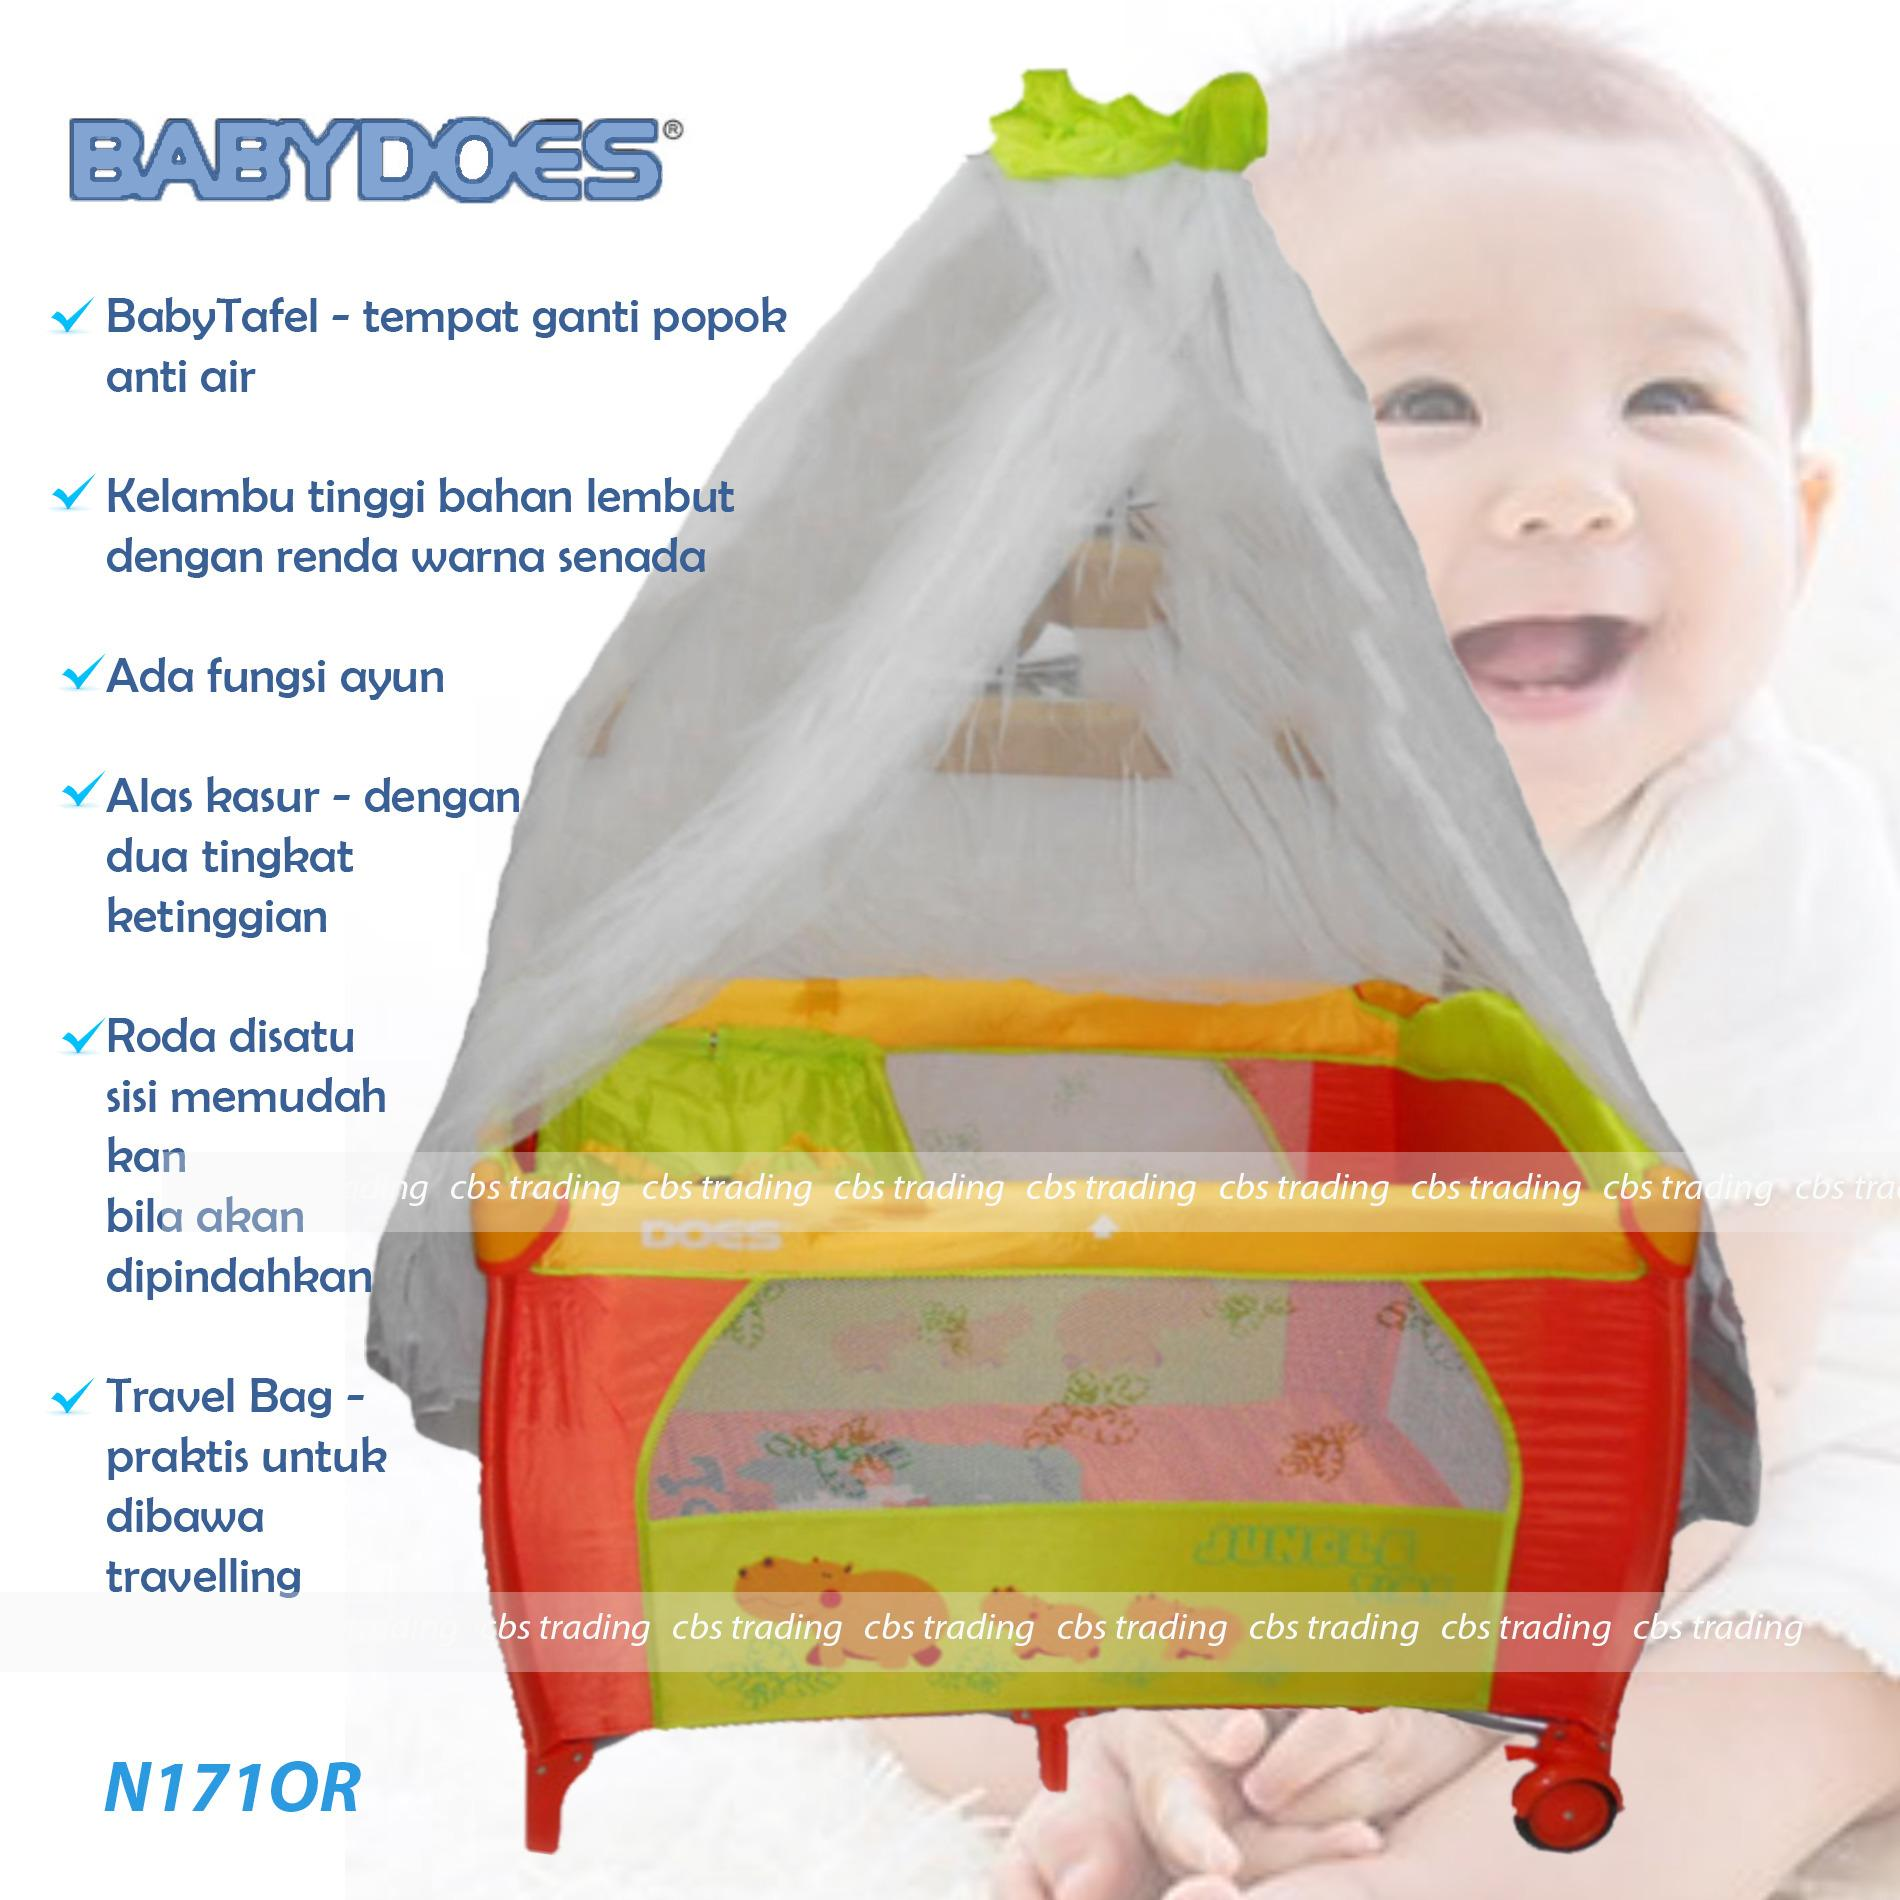 Babydoes Baby Box N171 Box Bayi Does 171 Ranjang Bayi Orange Original